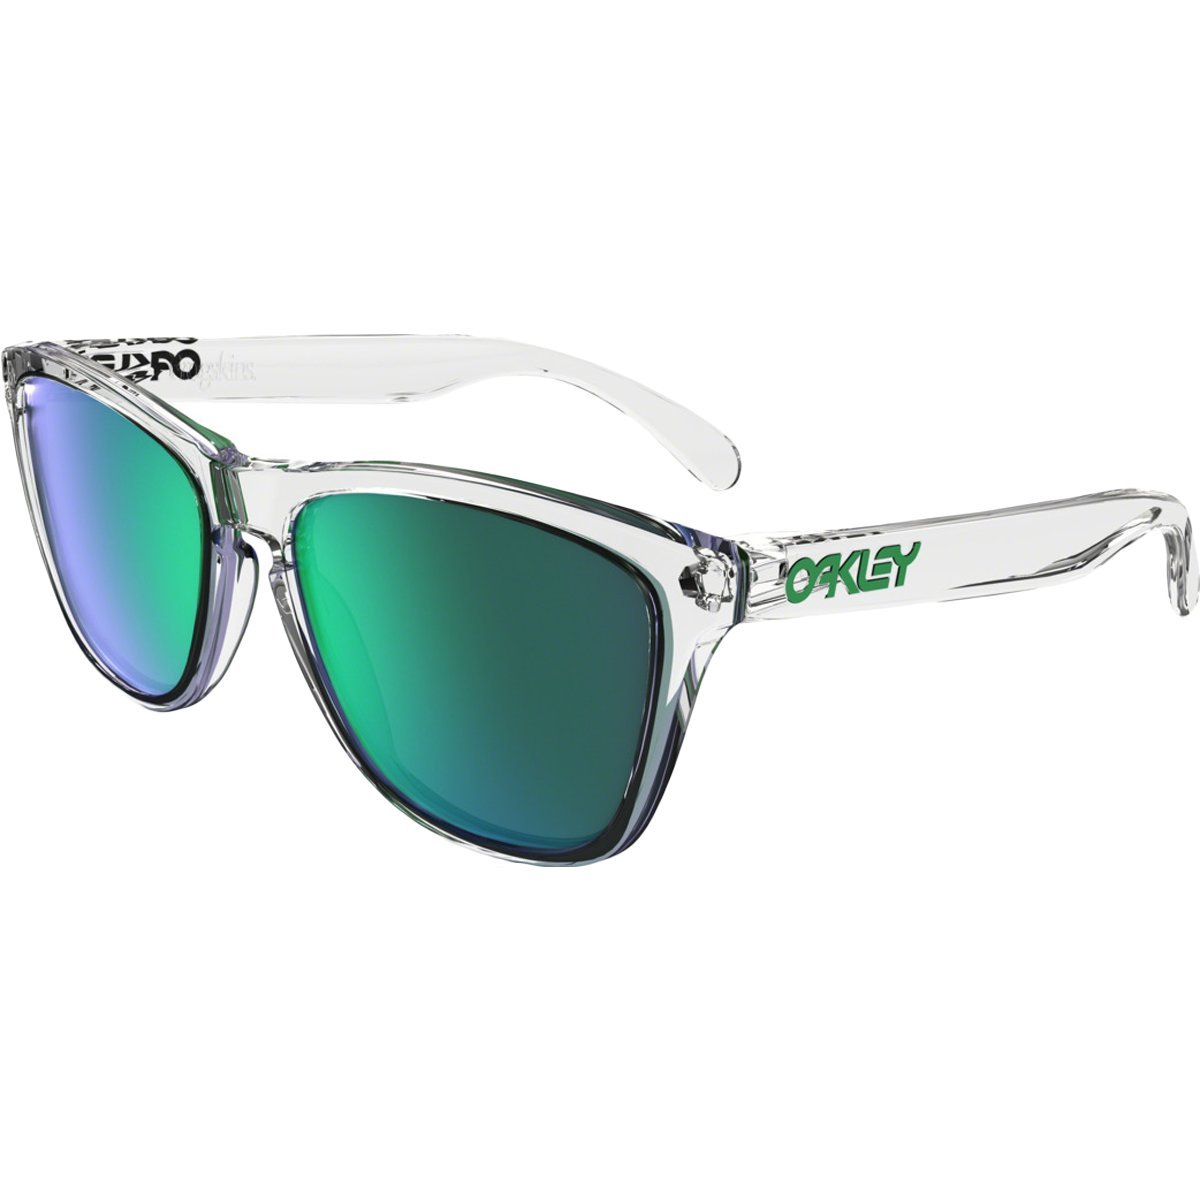 Oakley Frogskins Square Sunglasses, Polished Clear w/Jade Iridium, 55 mm